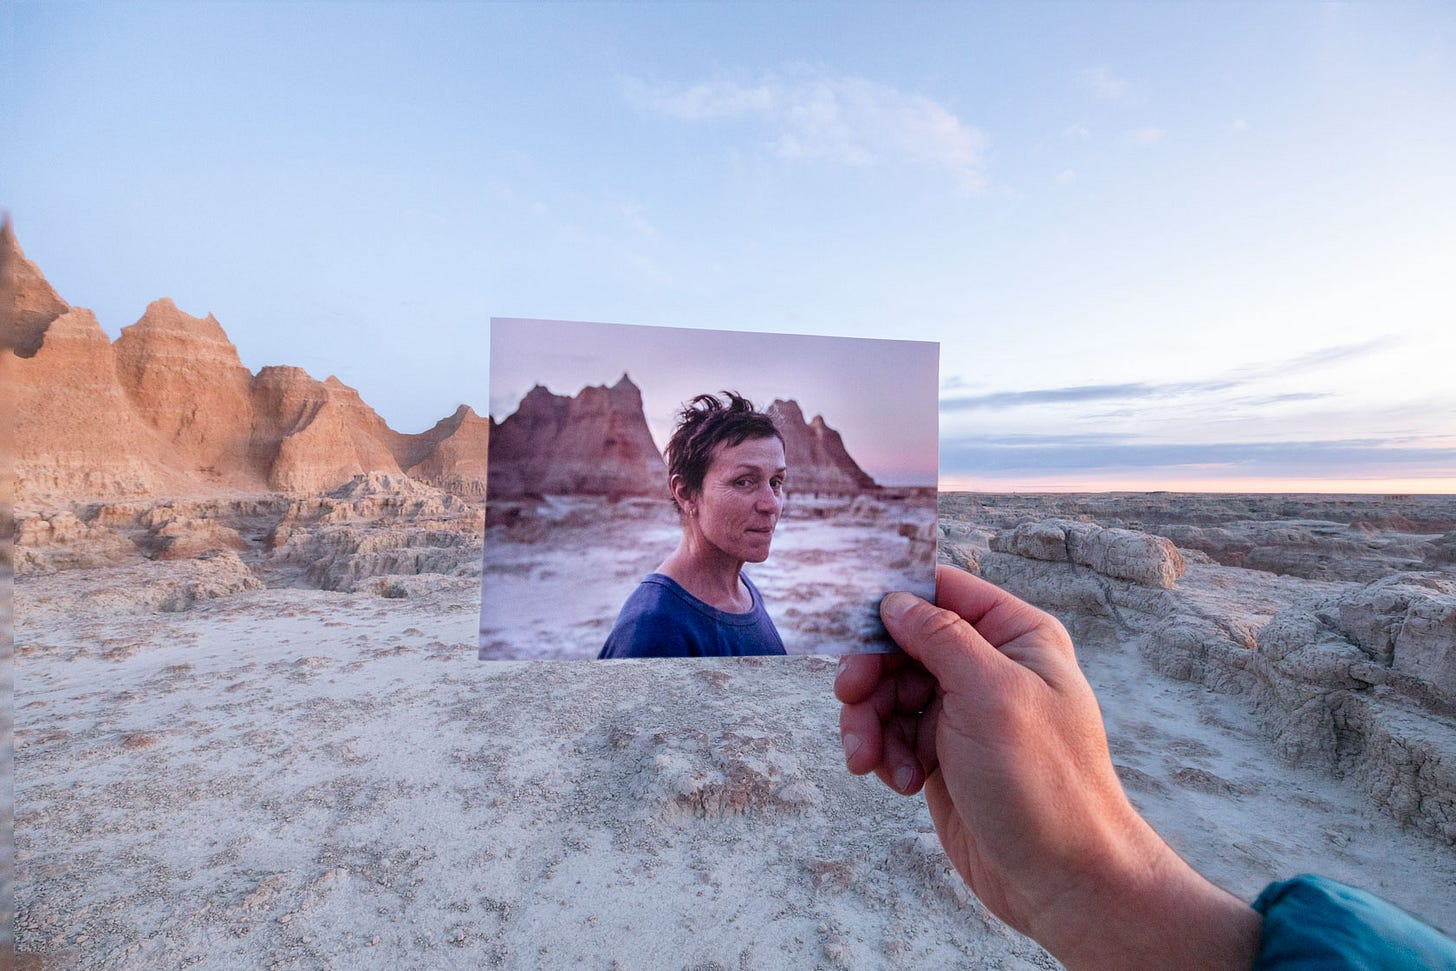 A person holding a picture in front of a desert.